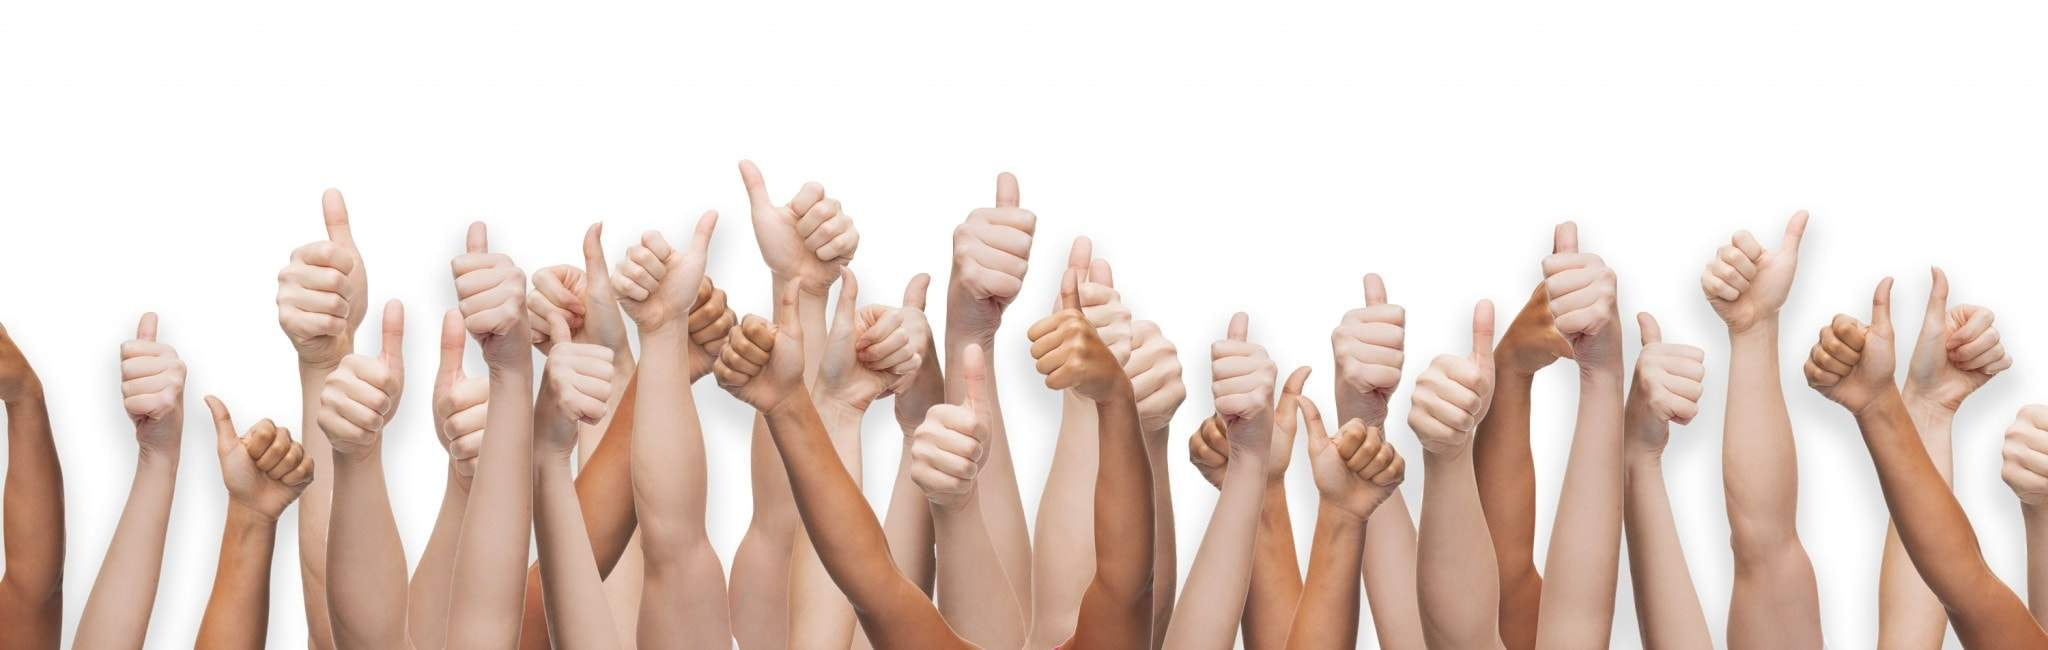 many-thumbs-up-on-white-background-min